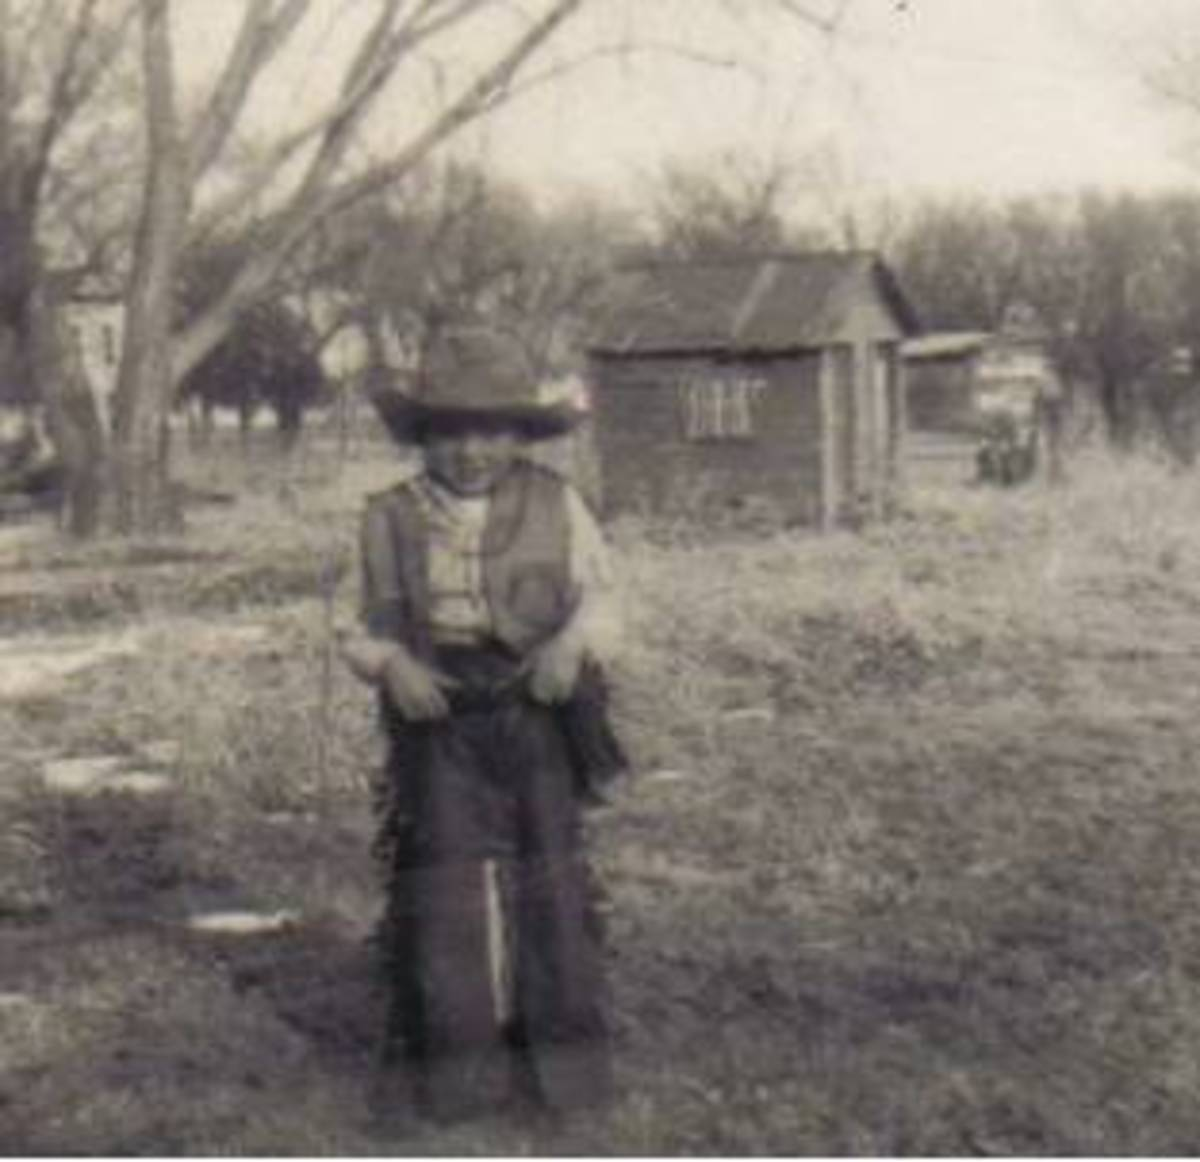 My brother in his cowboy outfit in the 1950s